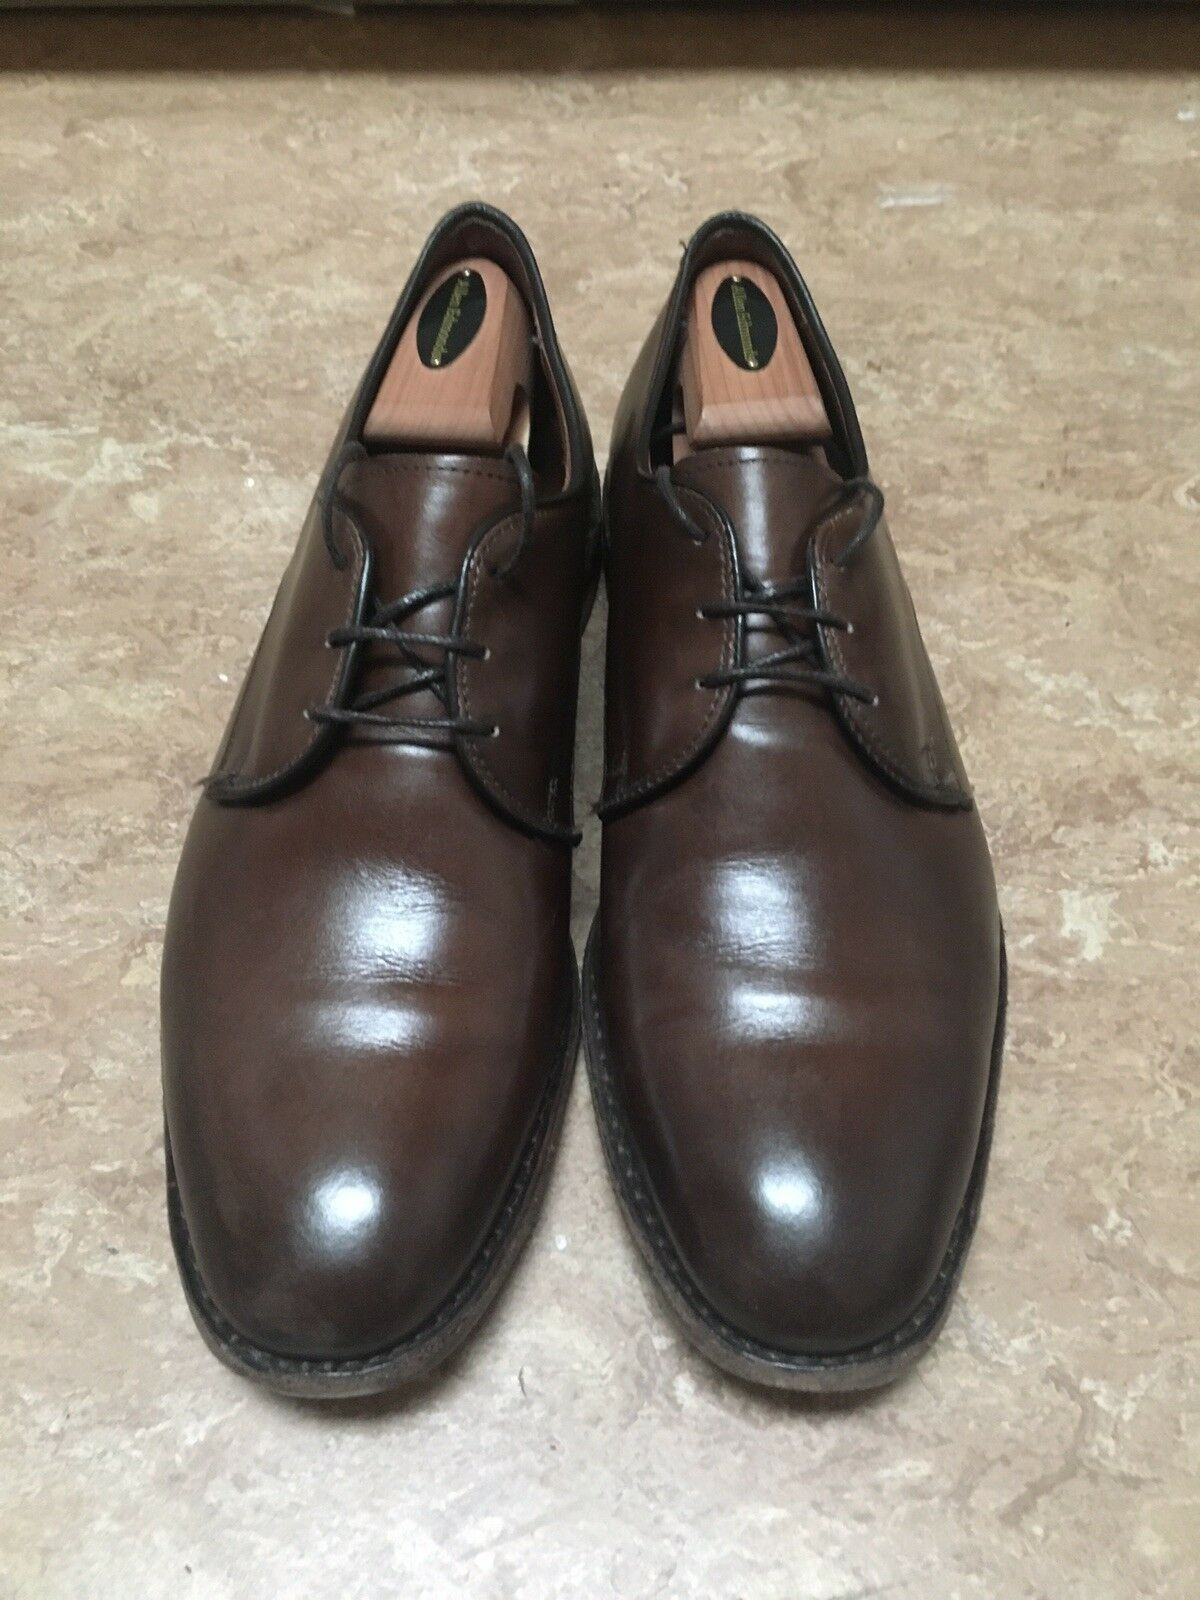 Kenilworth Allen Edmonds Dark Brown shoes 10D